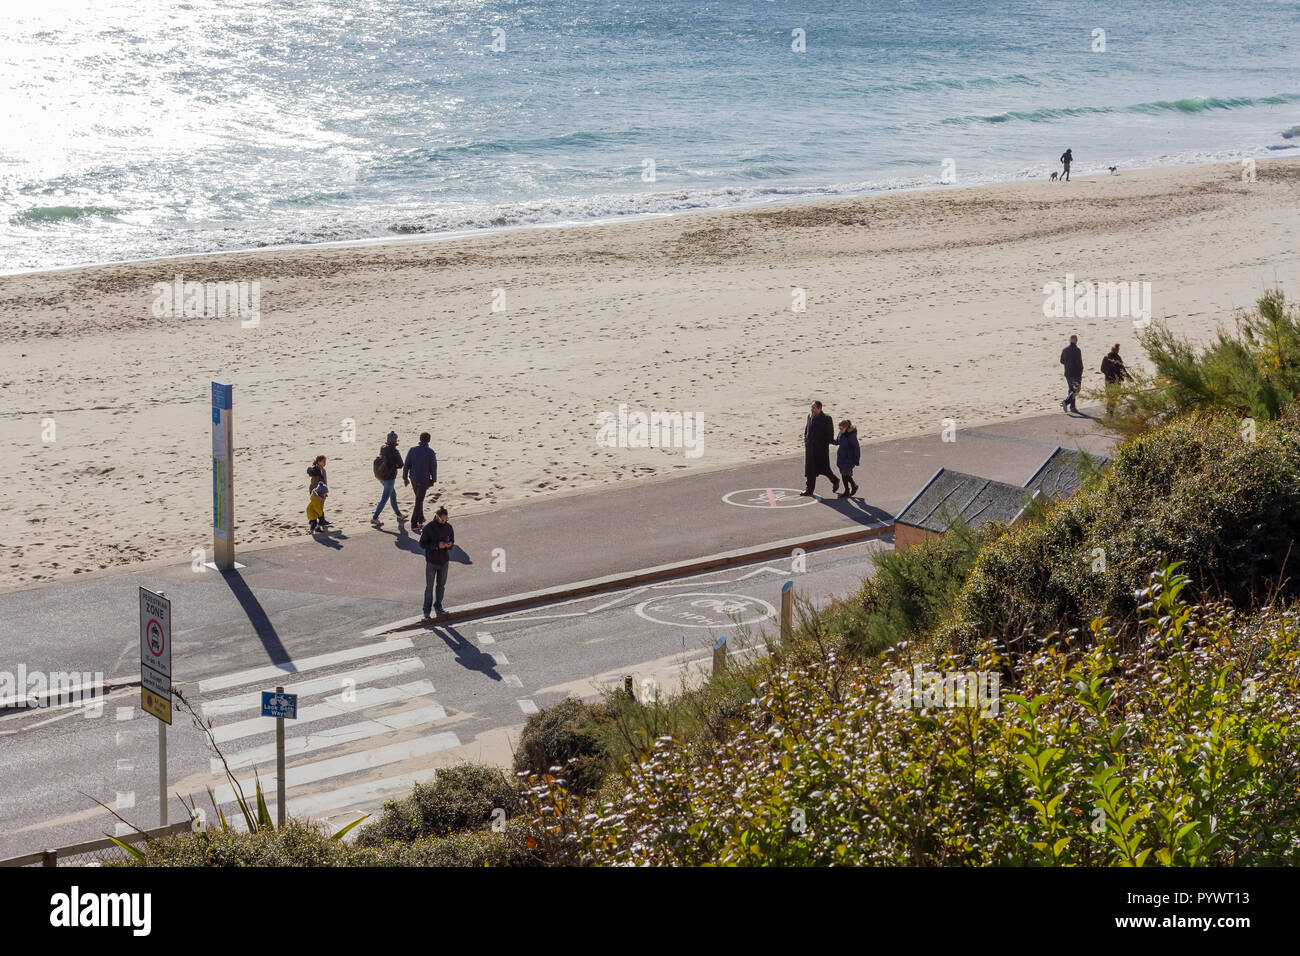 Sunday afternoon on Bournemouth beach with people enjoying some autumnal sunshine on a chilly day, October 2018, Dorset, UK - Stock Image